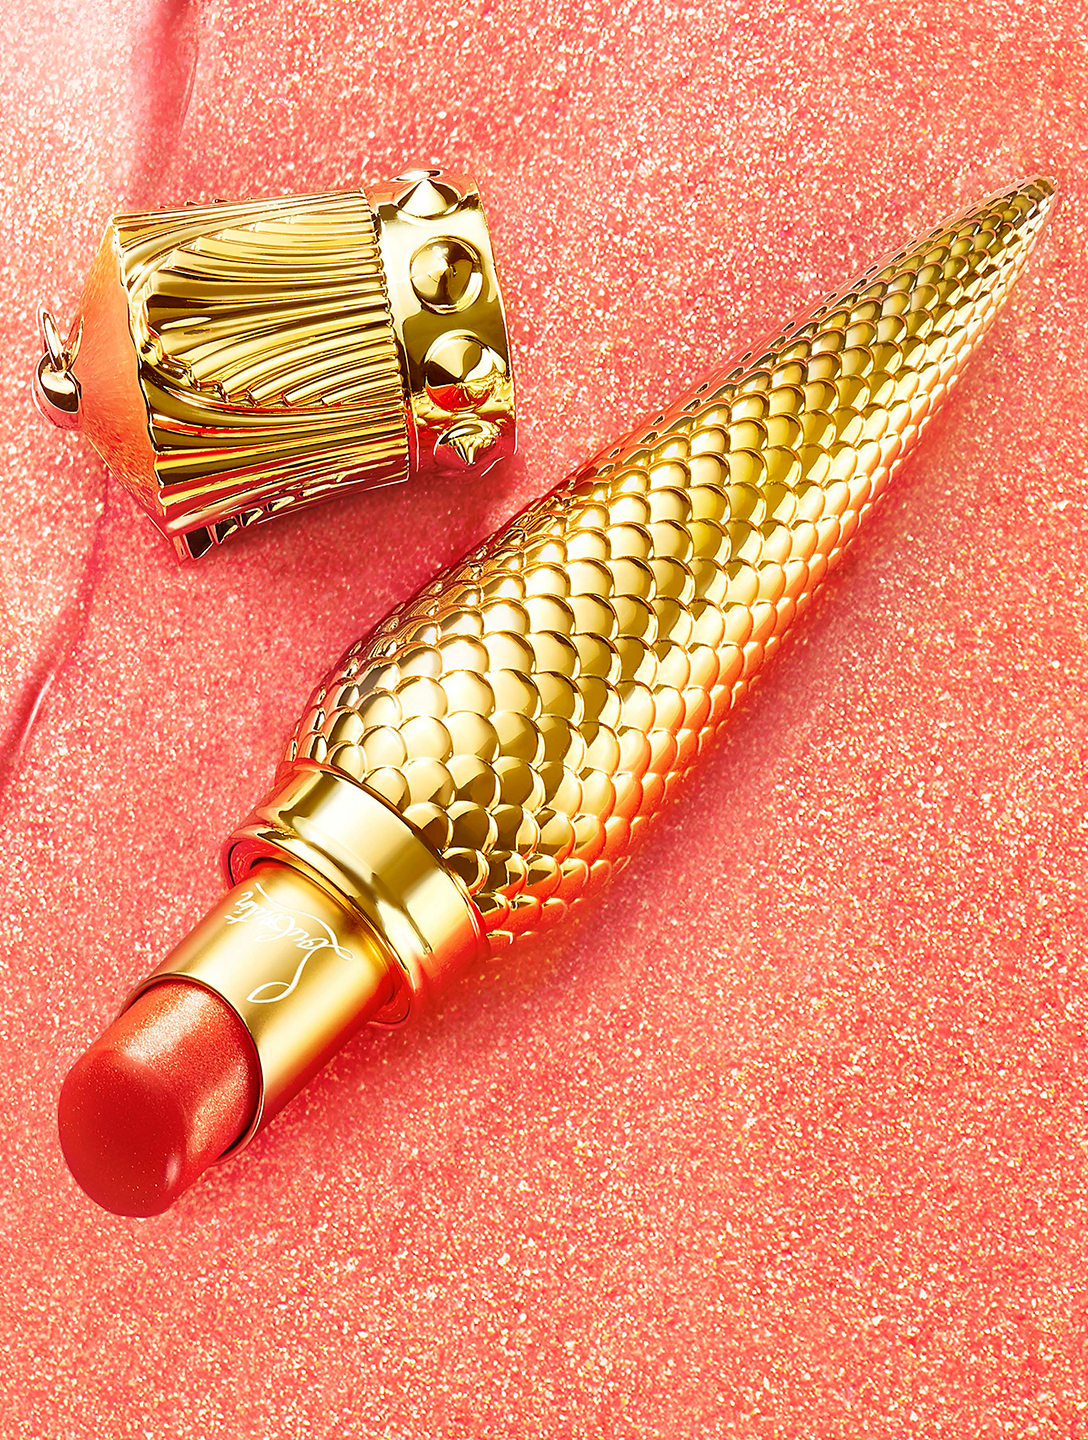 CHRISTIAN LOUBOUTIN Sheer Voile Lip Colour - Limited Edition Beauty Orange